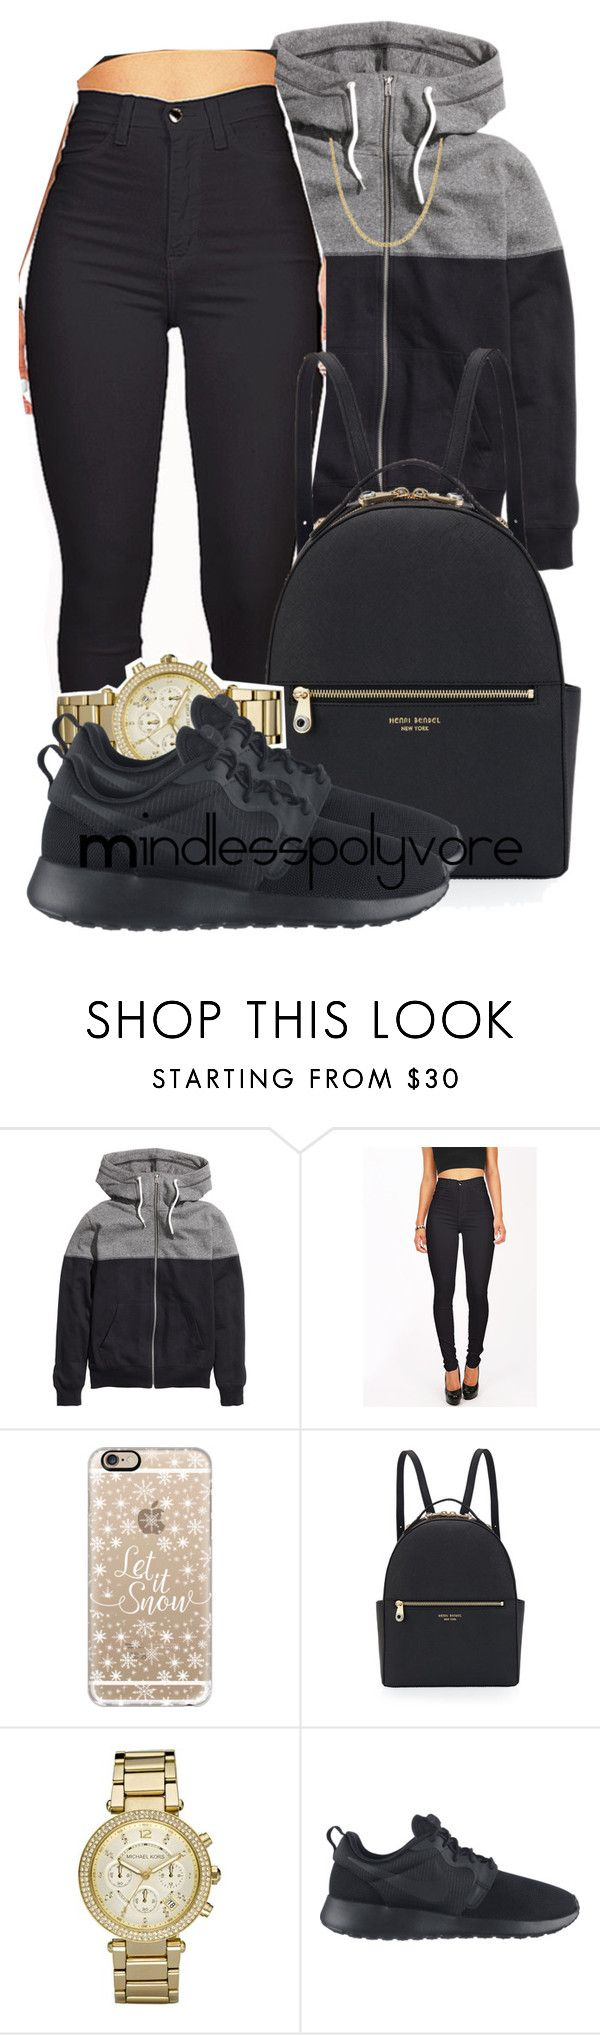 """""""Curiosity taking over me"""" by mindlesspolyvore ❤ liked on Polyvore featuring H&M, Casetify, Henri Bendel, Michael Kors, NIKE and Reeds Jewelers"""